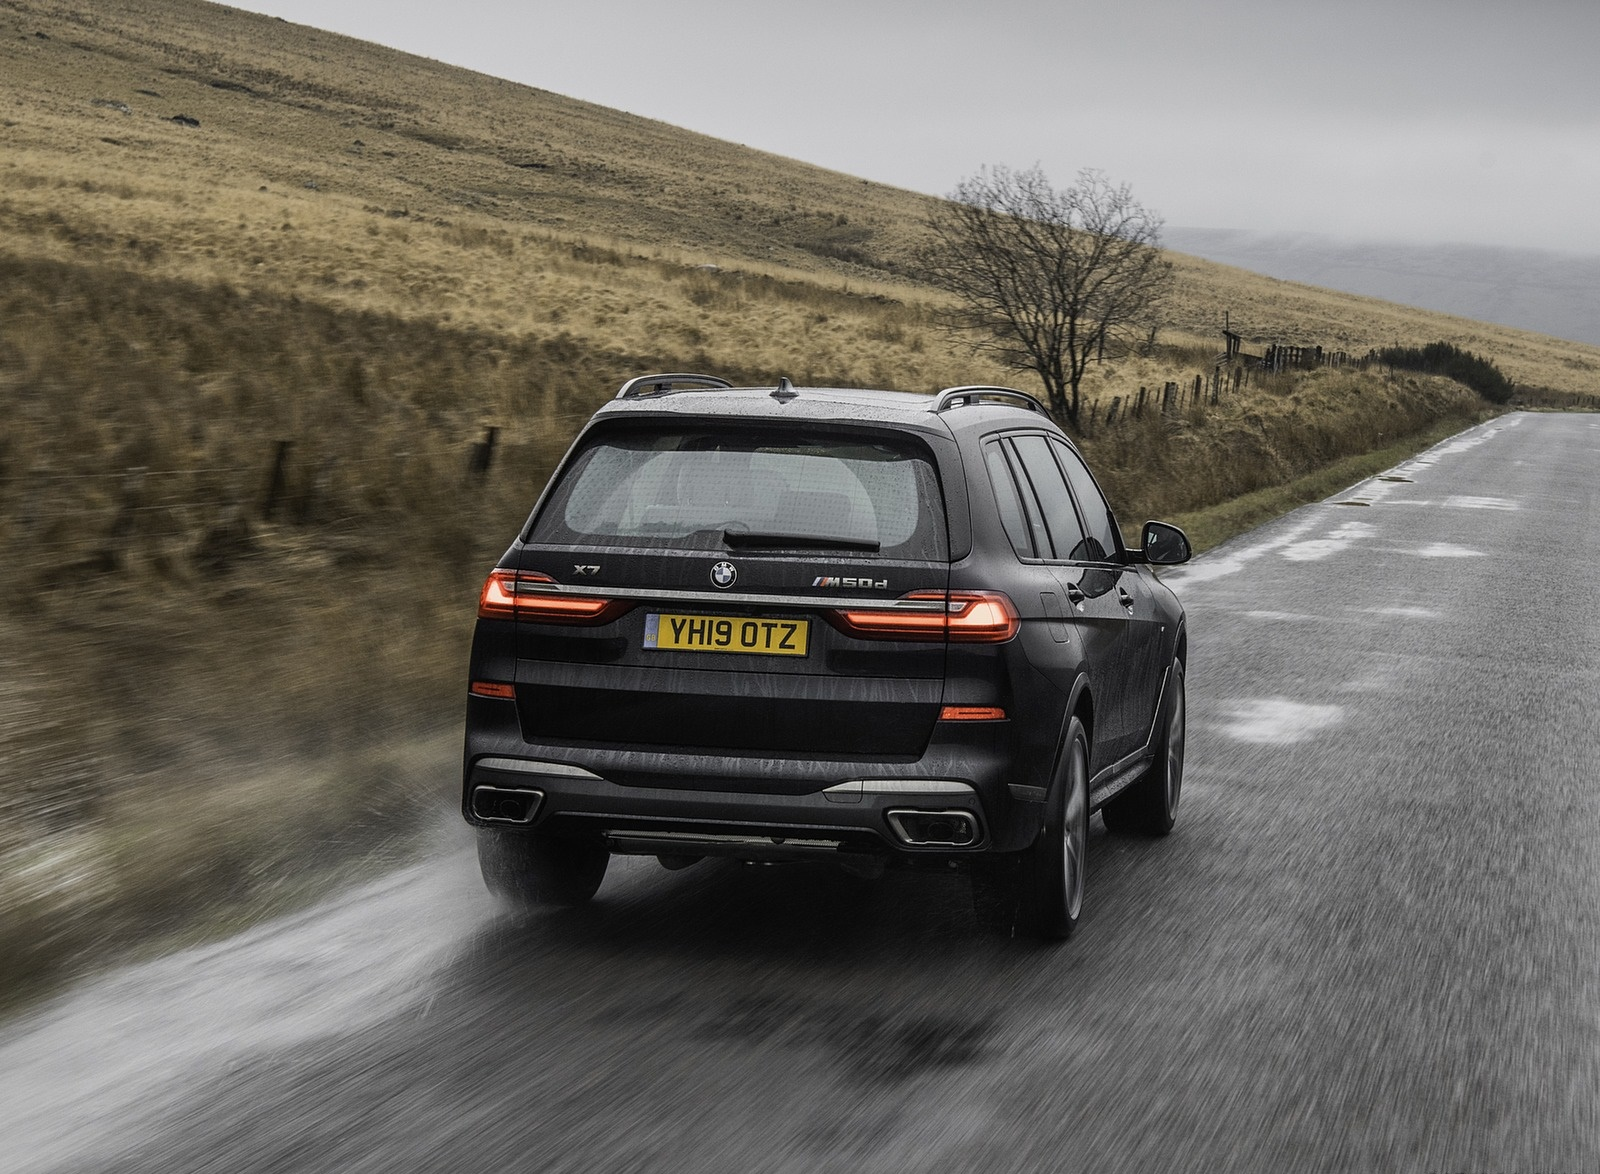 2019 BMW X7 M50d (UK-Spec) Rear Wallpapers (10)